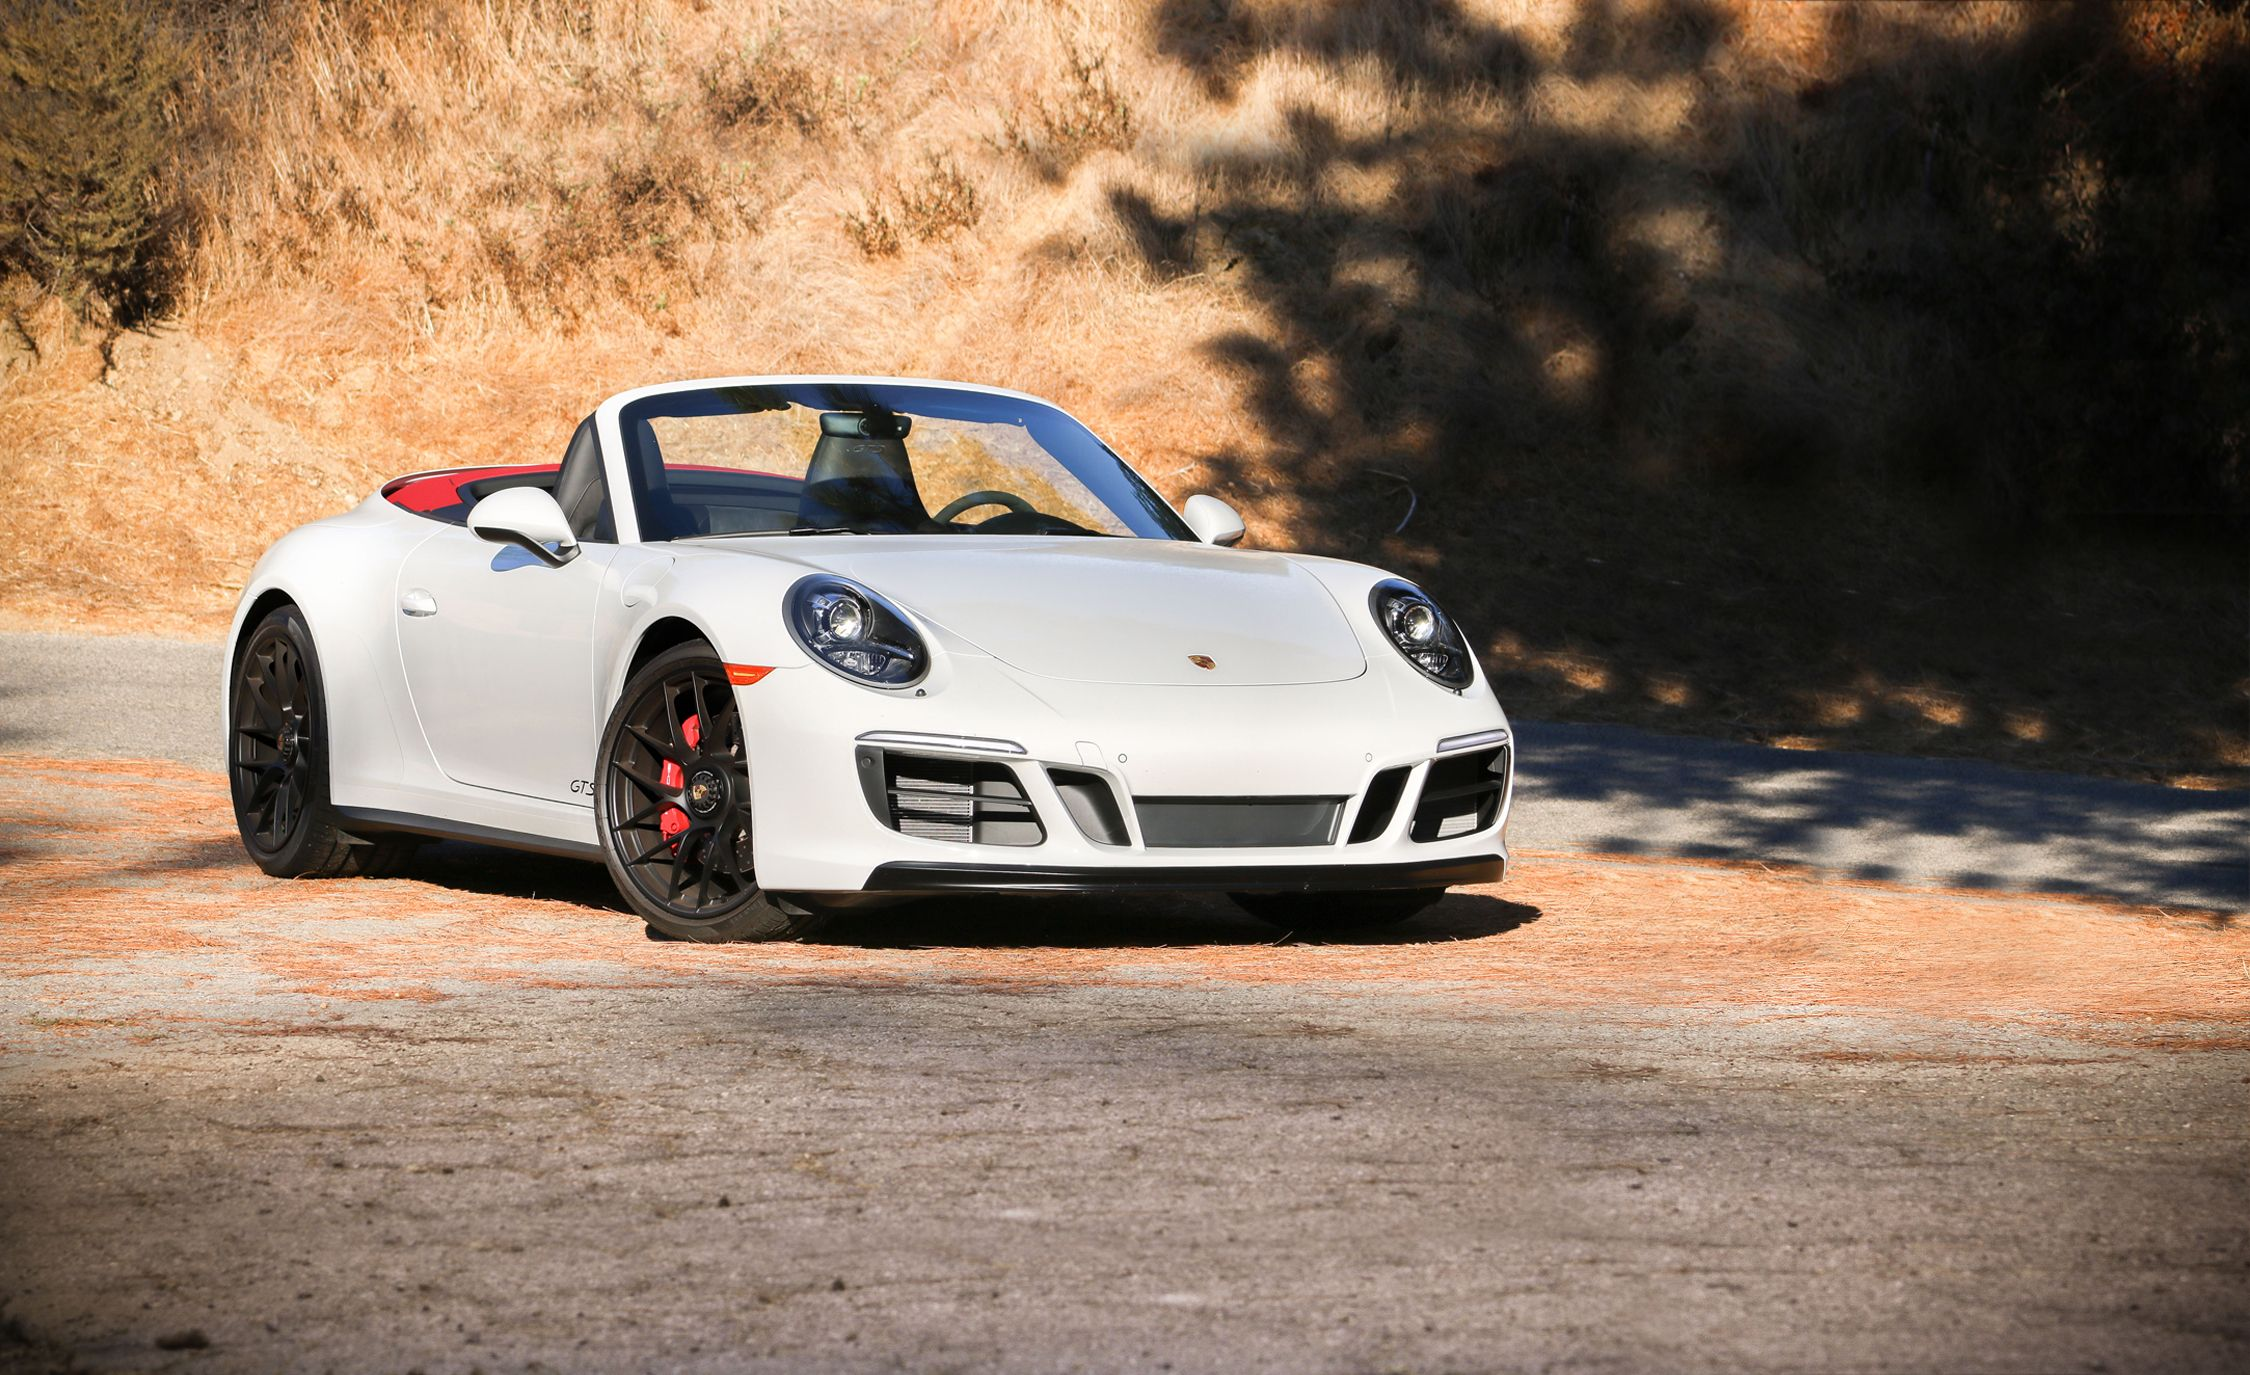 2017 Porsche 911 Carrera Pictures | Photo Gallery | Car and Driver